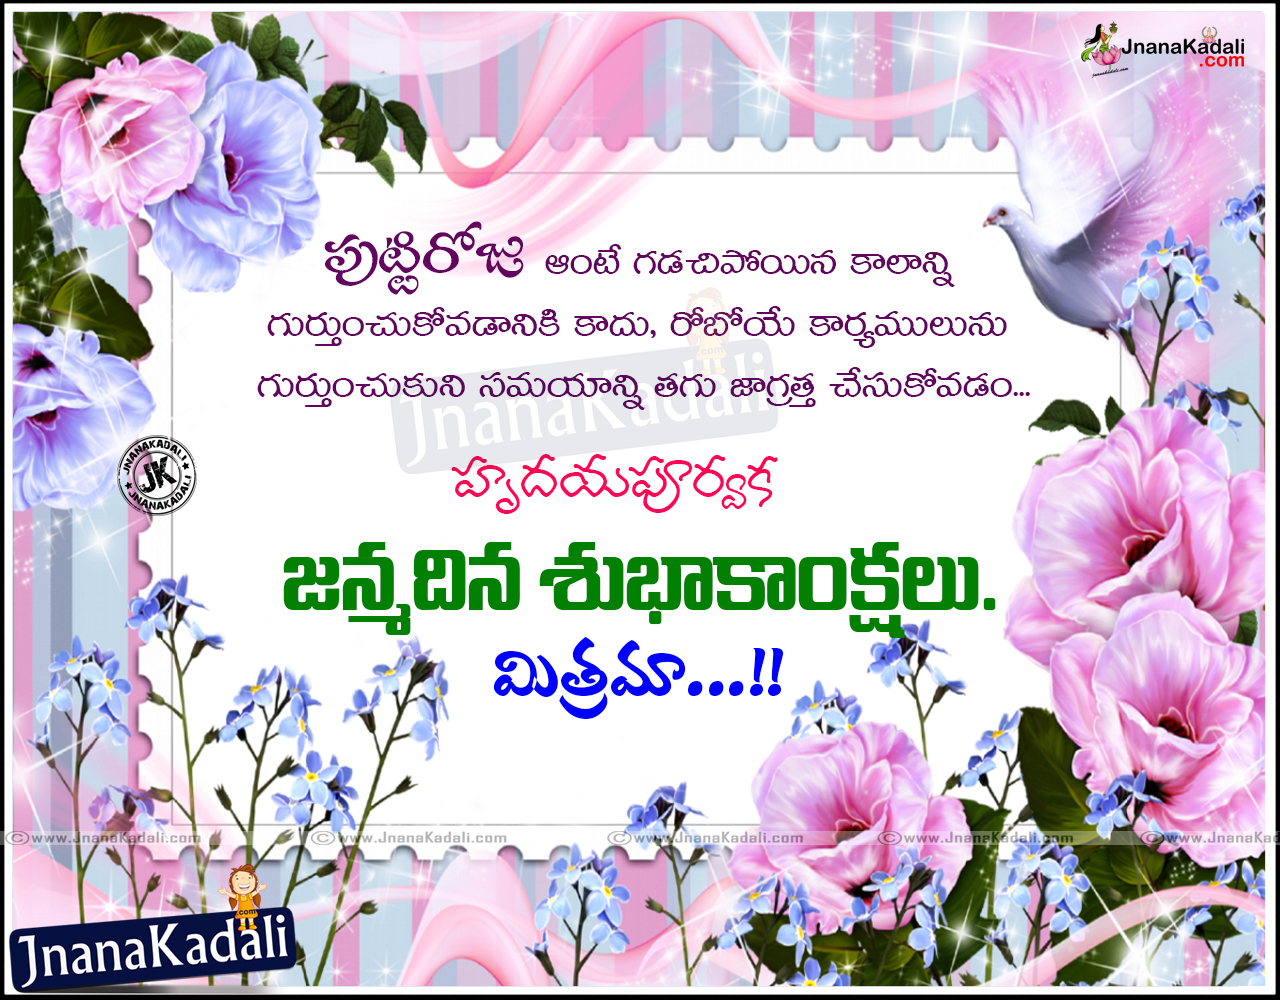 Birthday greetings in bengali language images greeting card examples happy birthday greetings and images with quotes in telugu for happy birthday wishes greeting in telugu kristyandbryce Image collections